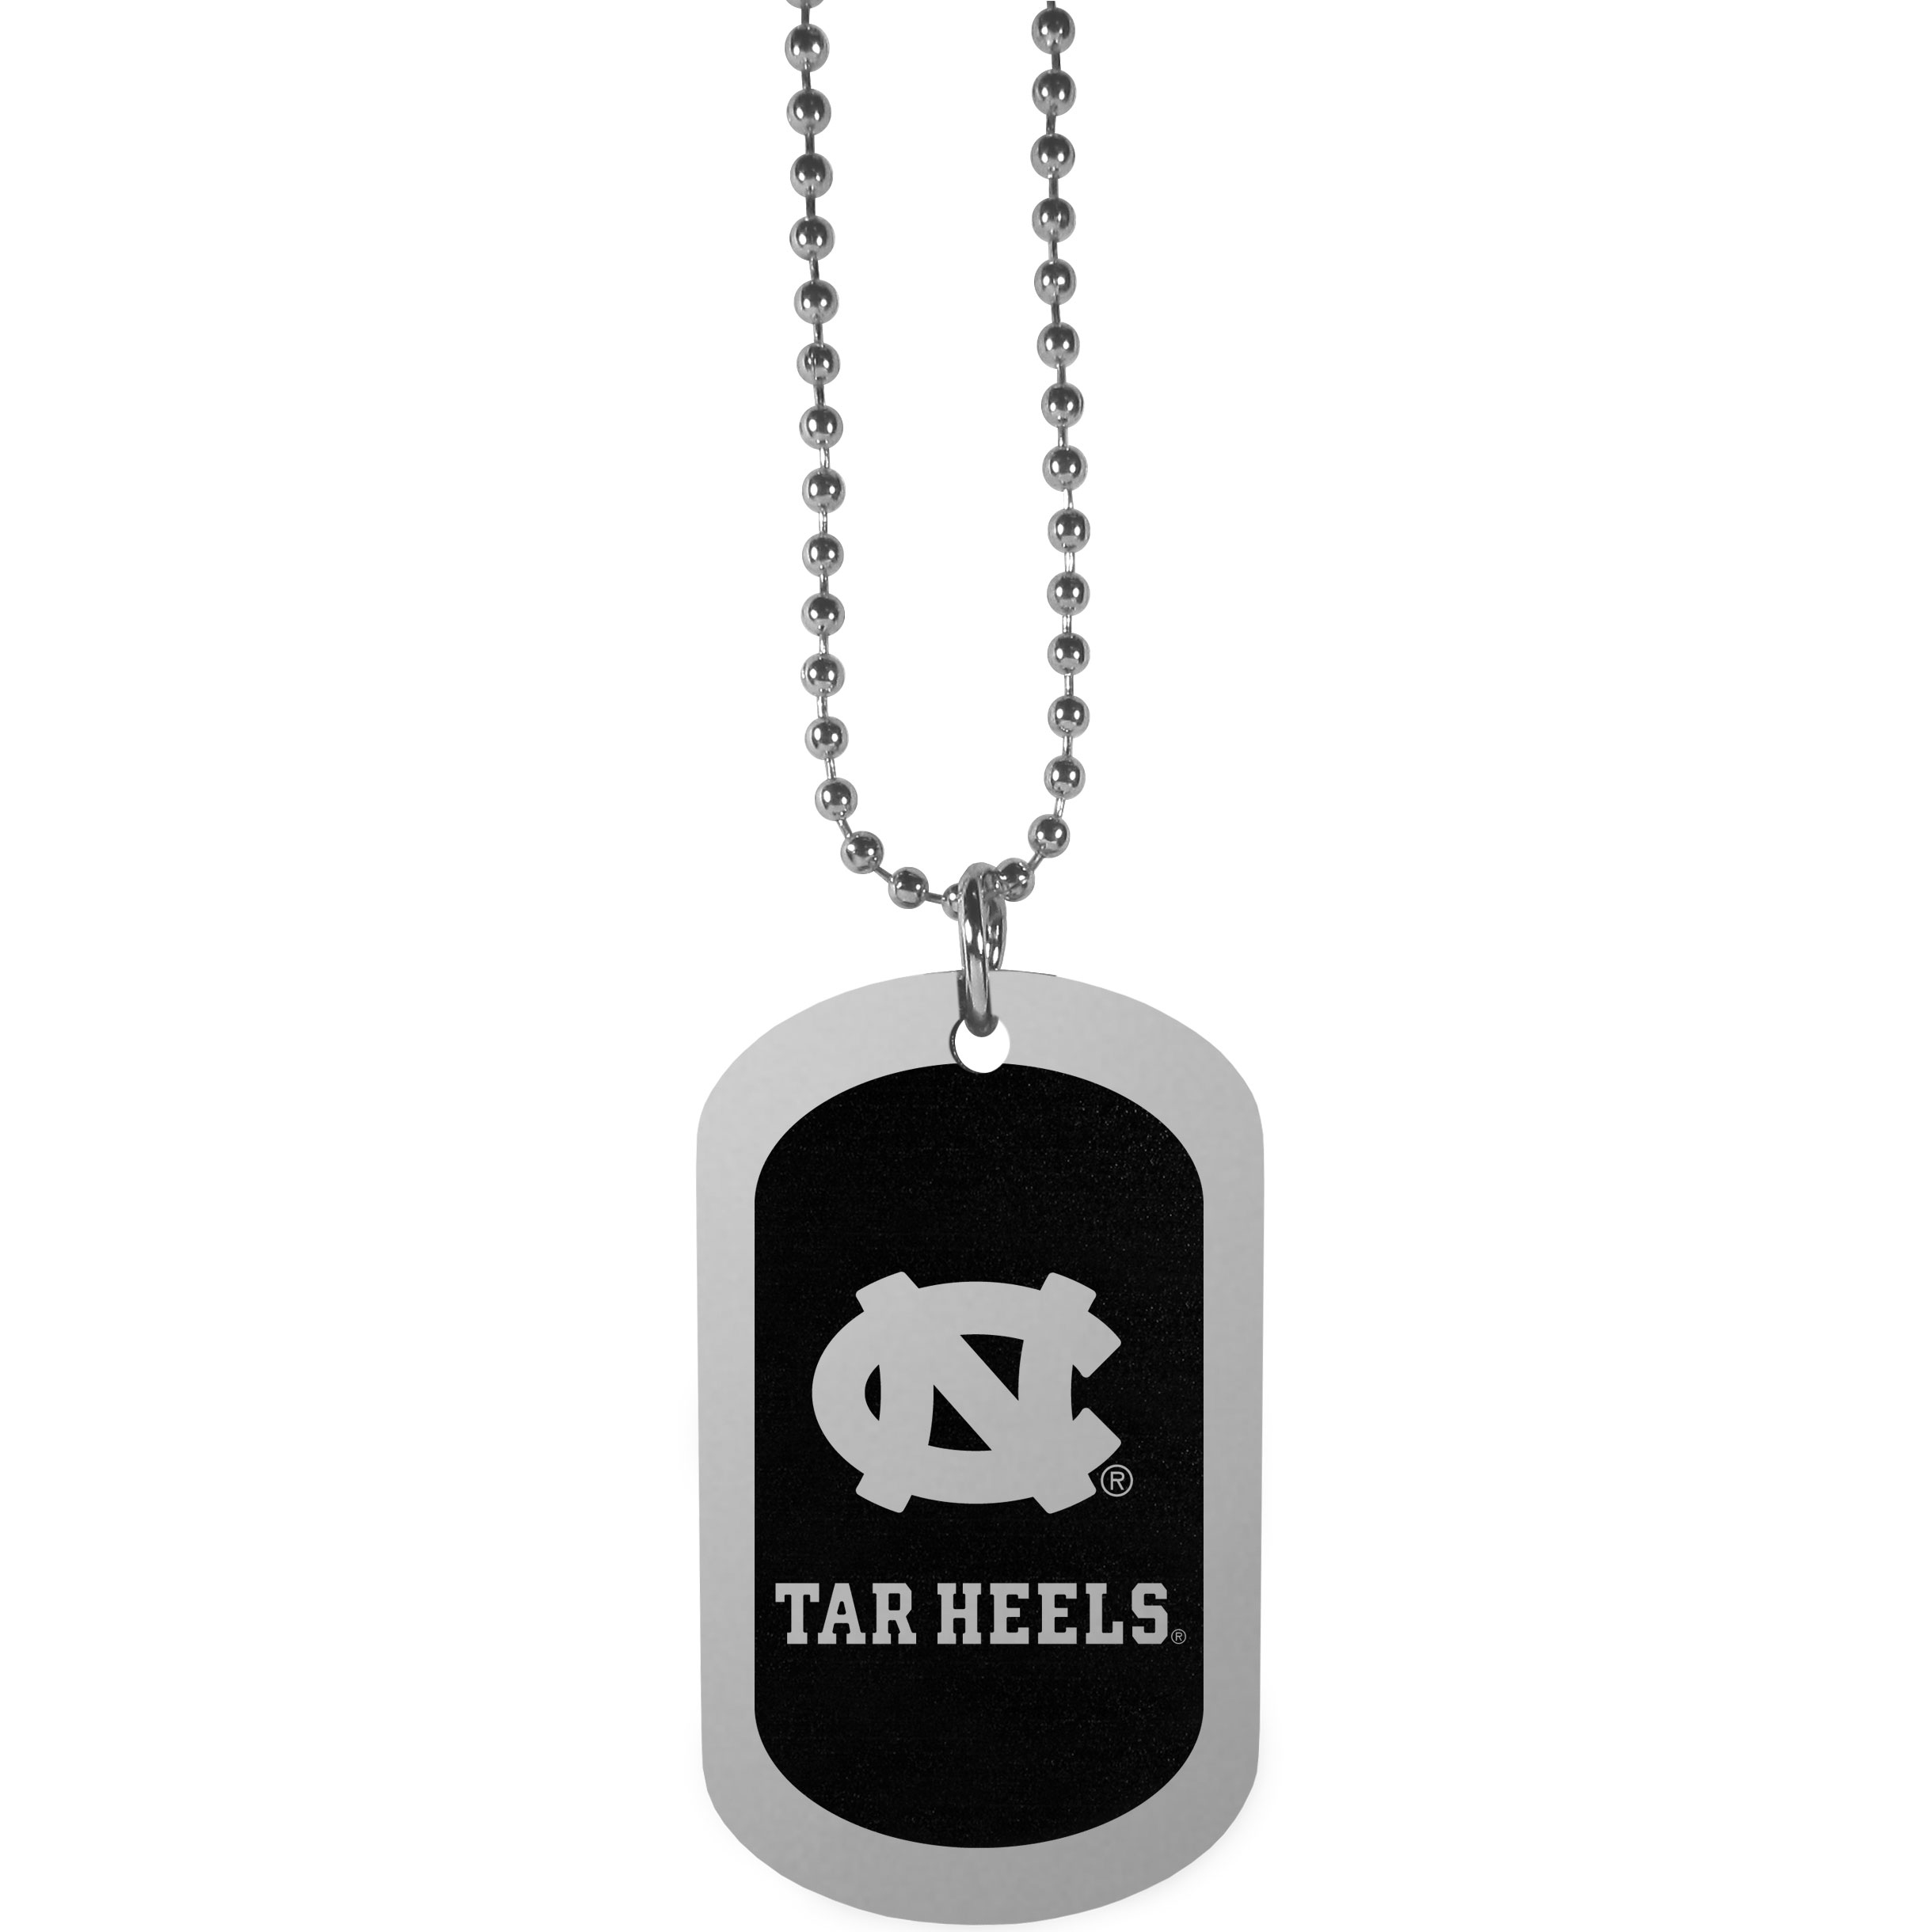 N. Carolina Tar Heels Chrome Tag Necklace - Dog tag necklaces are a fashion statement that is here to stay. The sporty version of the classic tag features a black printed over a high polish tag to create a bold and sporty look. The tag comes on a 26 inch ball chain with a ball and joint clasp. Any N. Carolina Tar Heels would be proud to wear this attractive fashion accessory.